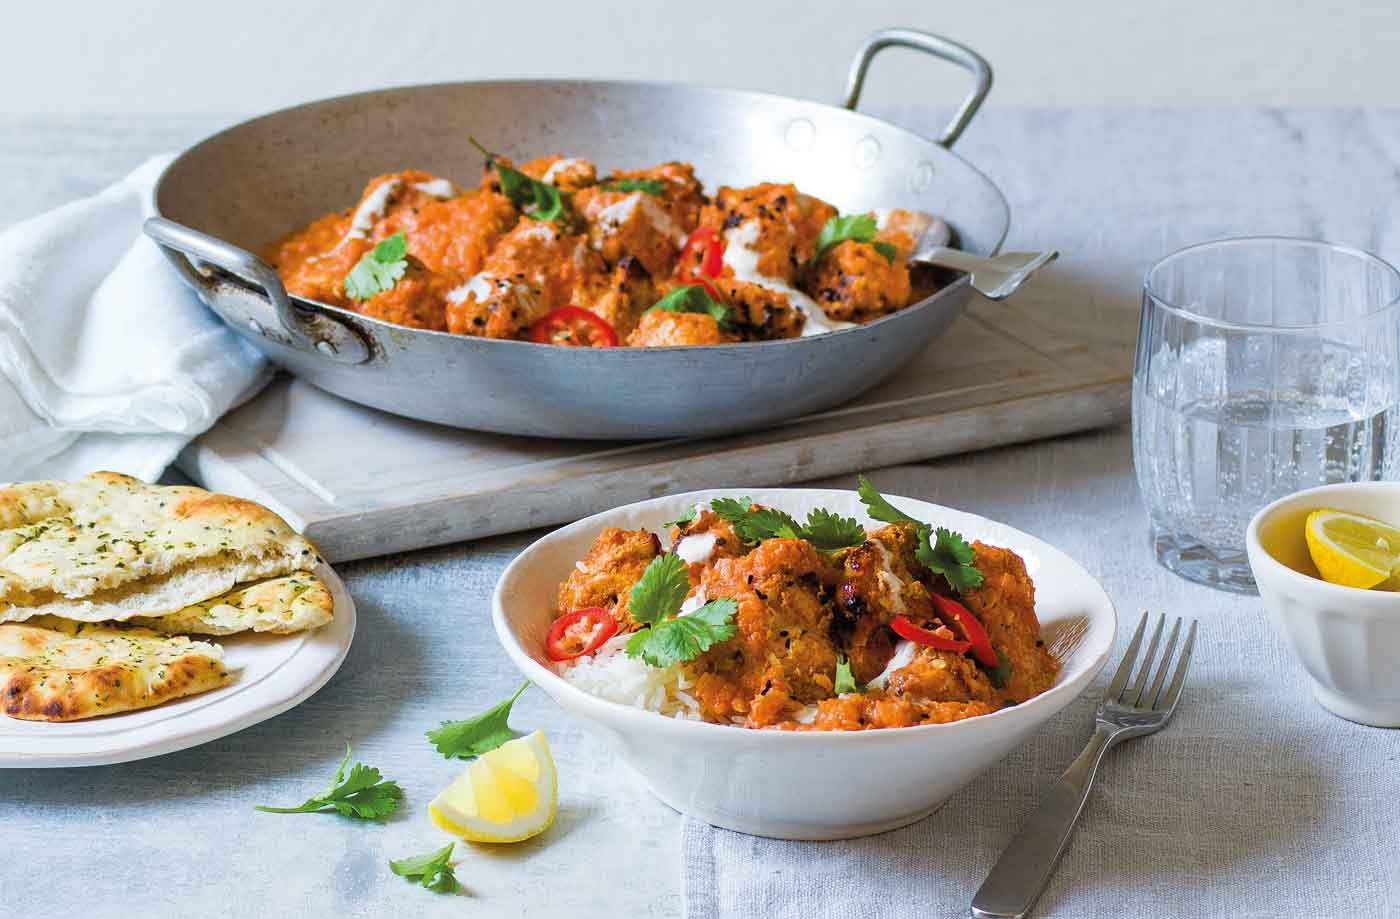 Traditional chicken tikka masala